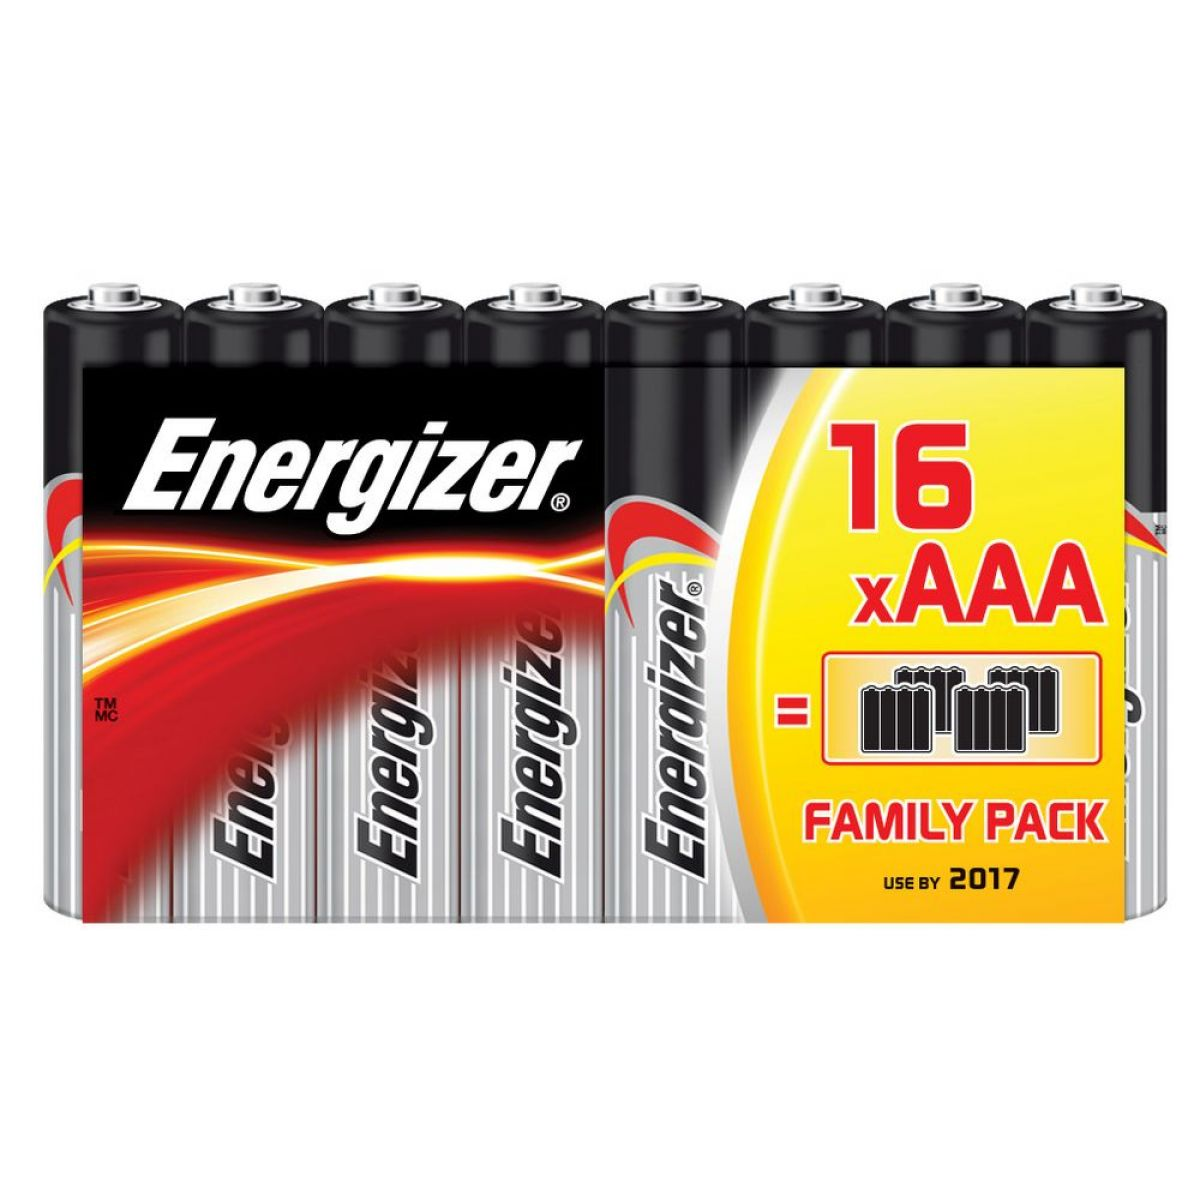 Energizer Alkaline Power AAA 16pack